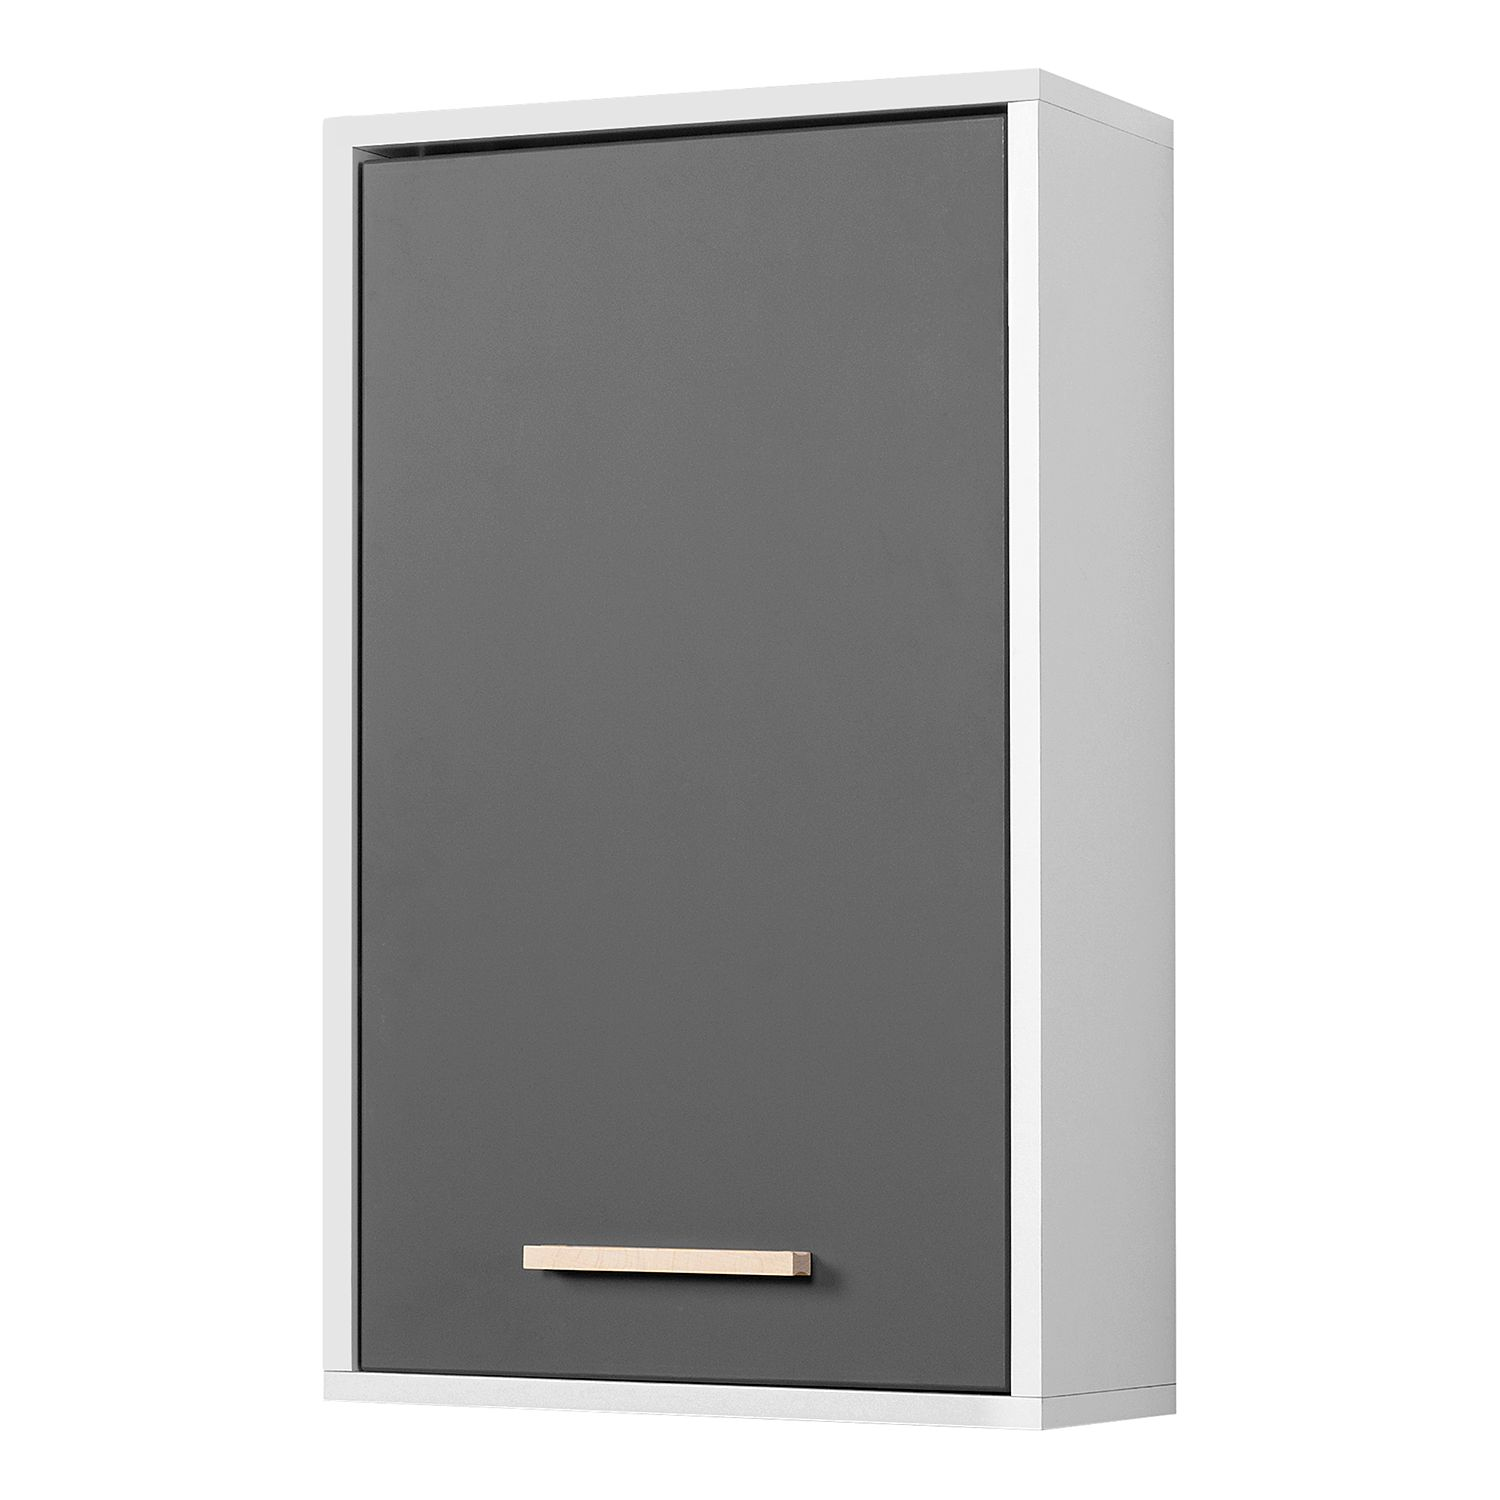 Armoire suspendue Oslo I - Gris mat, Giessbach